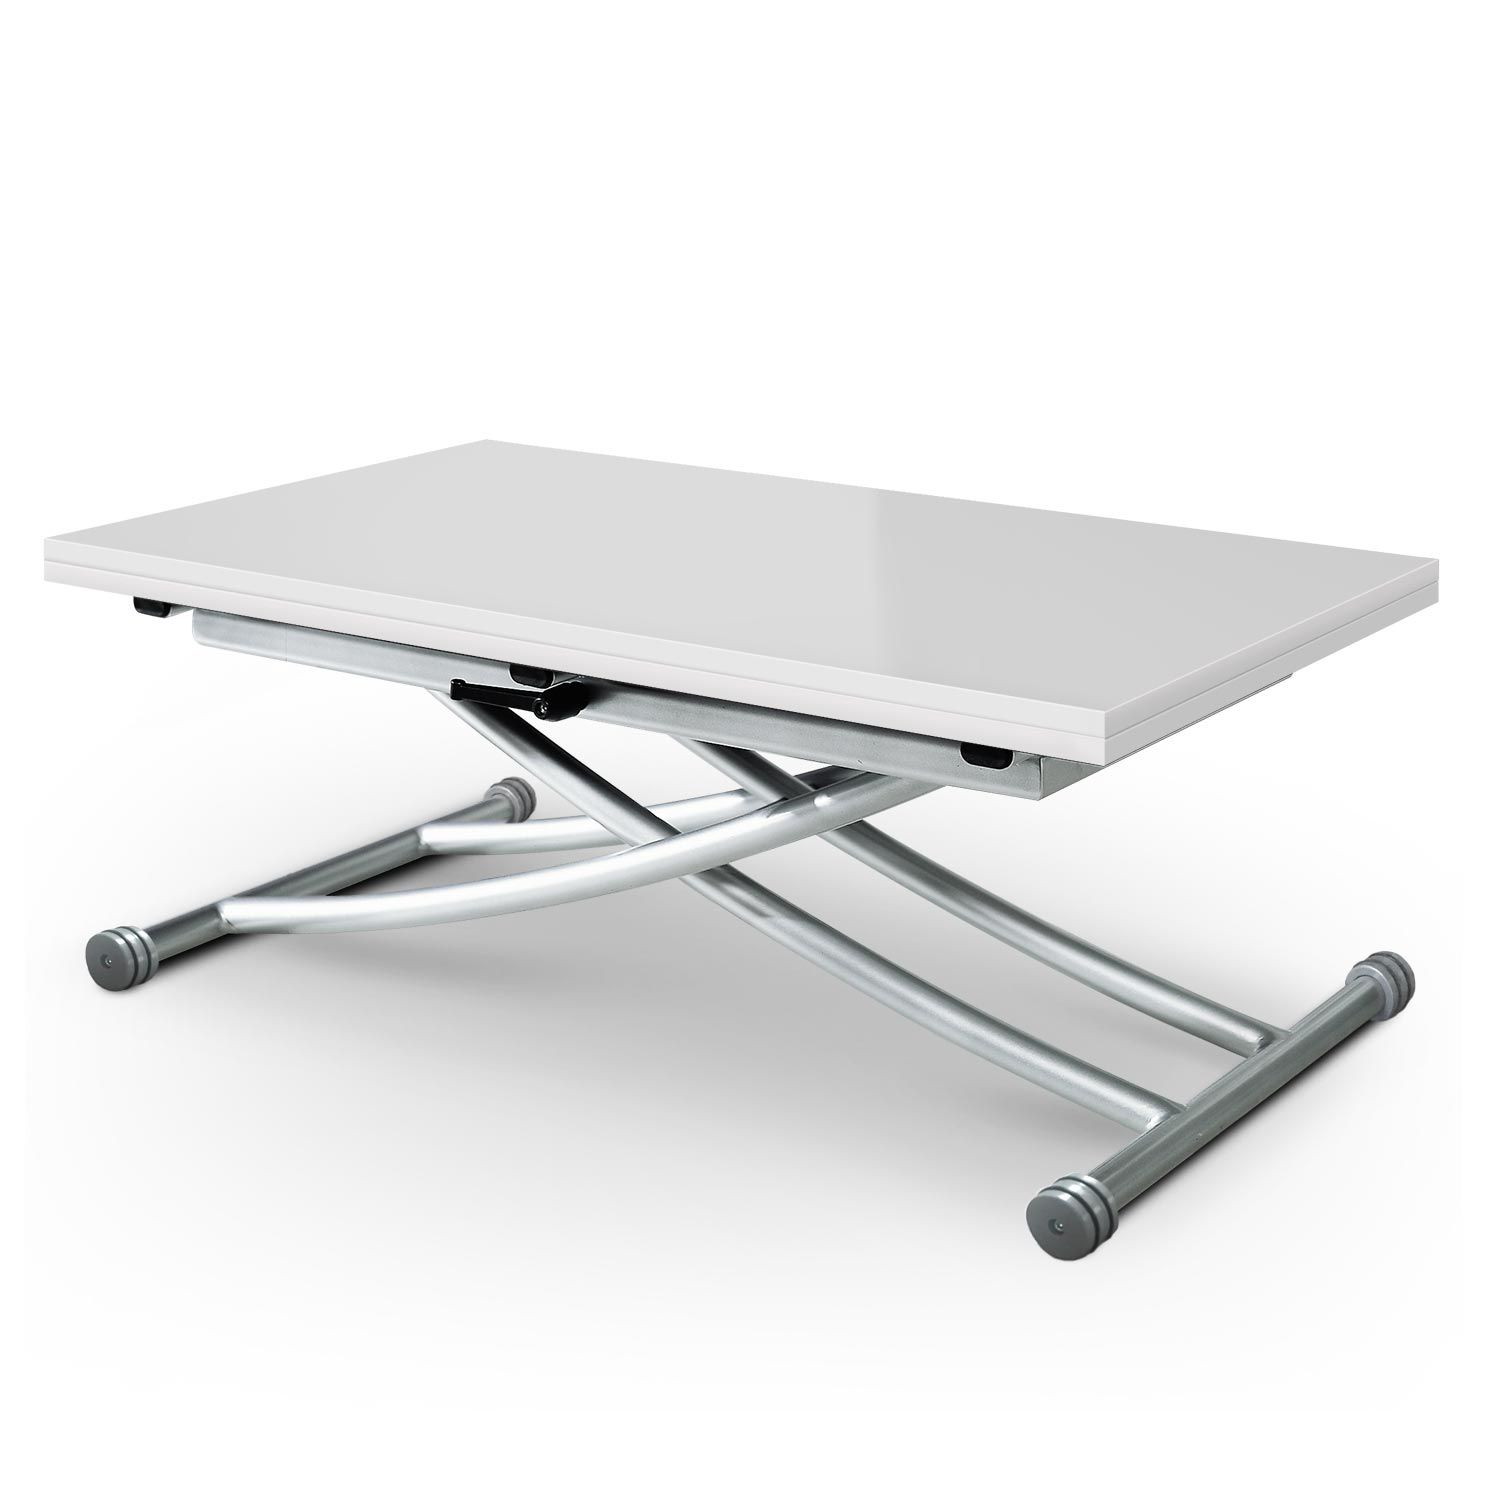 Table Basse Relevable Carrera Blanc Laque En 2020 Table Basse Relevable Table Basse Et Table Basse Relevable Extensible